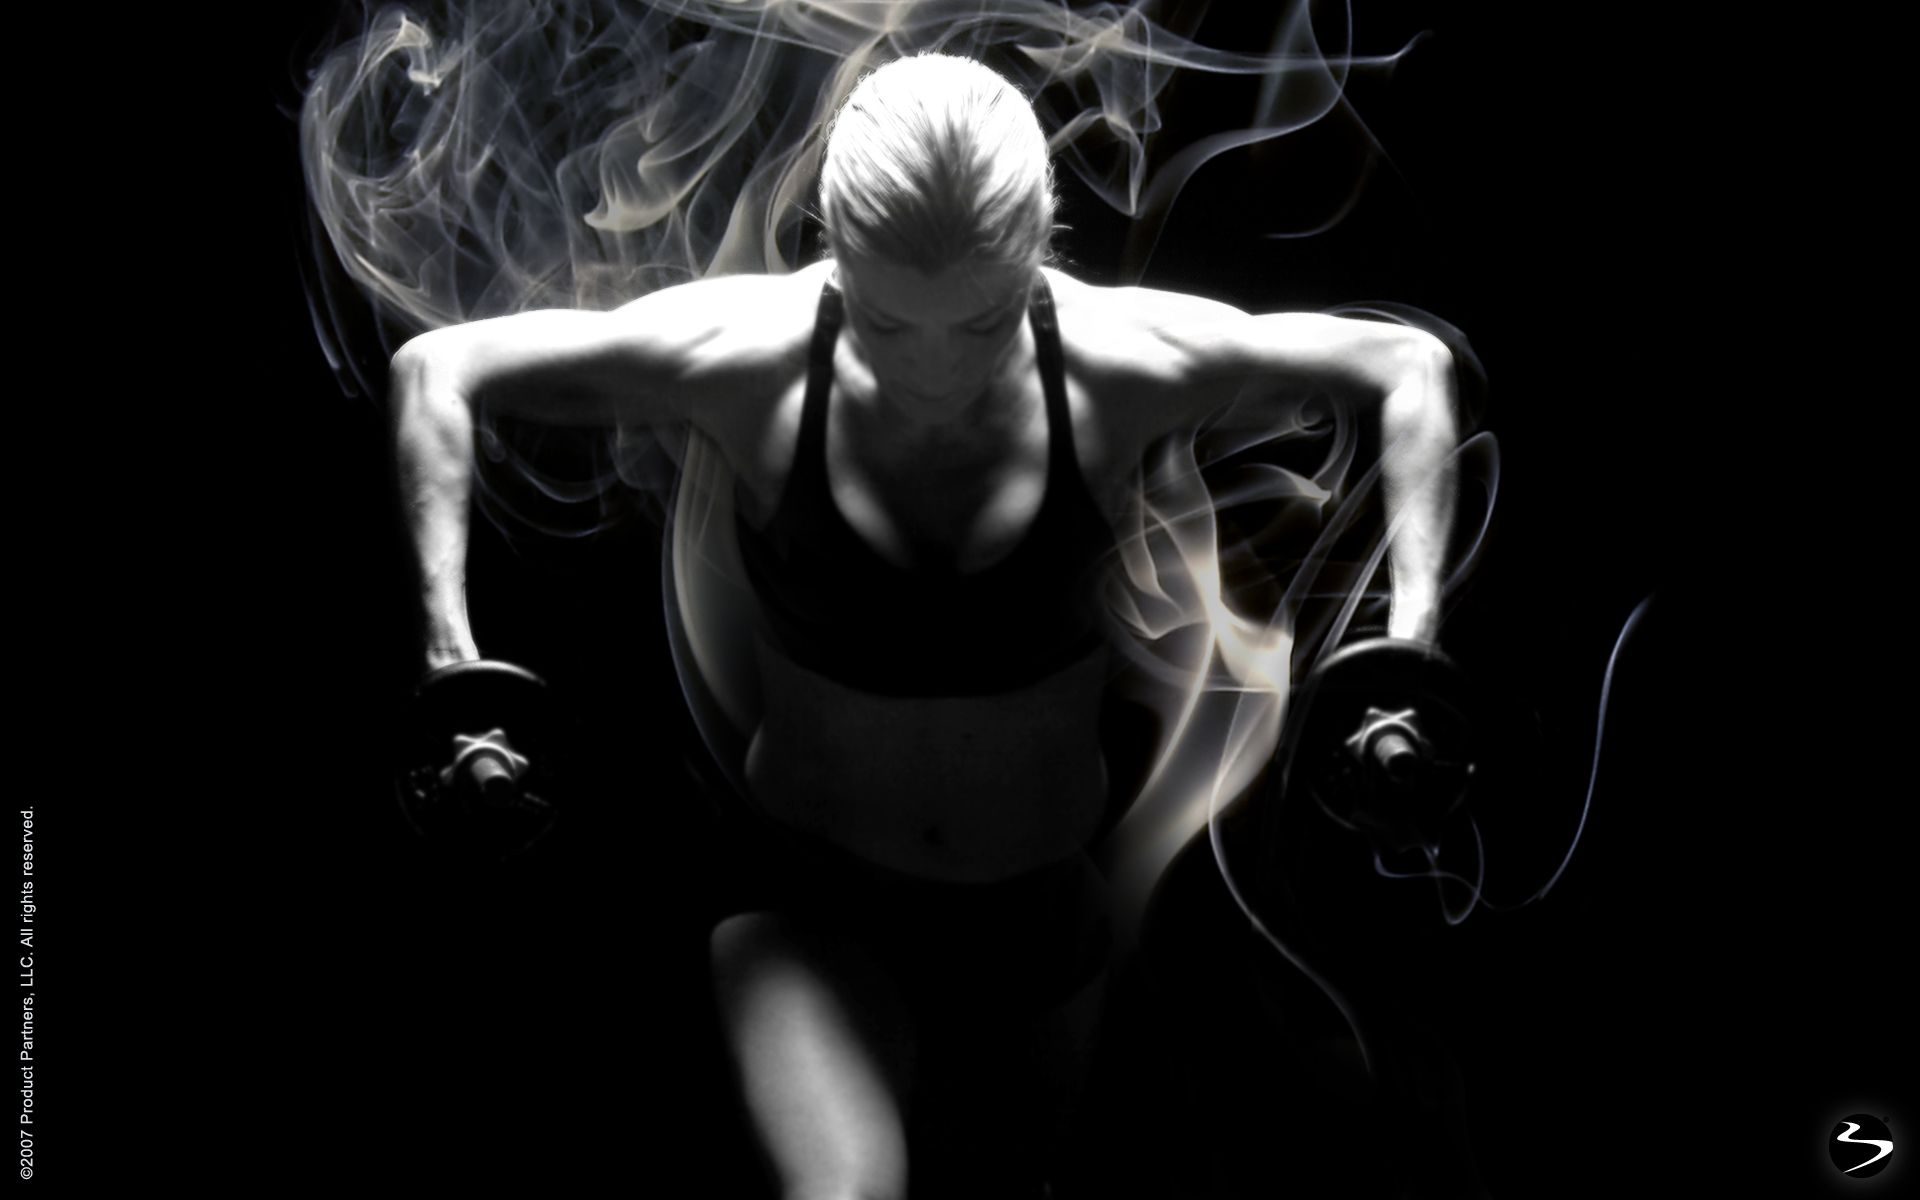 Download Free HD Fitness Wallpapers Wallpapers